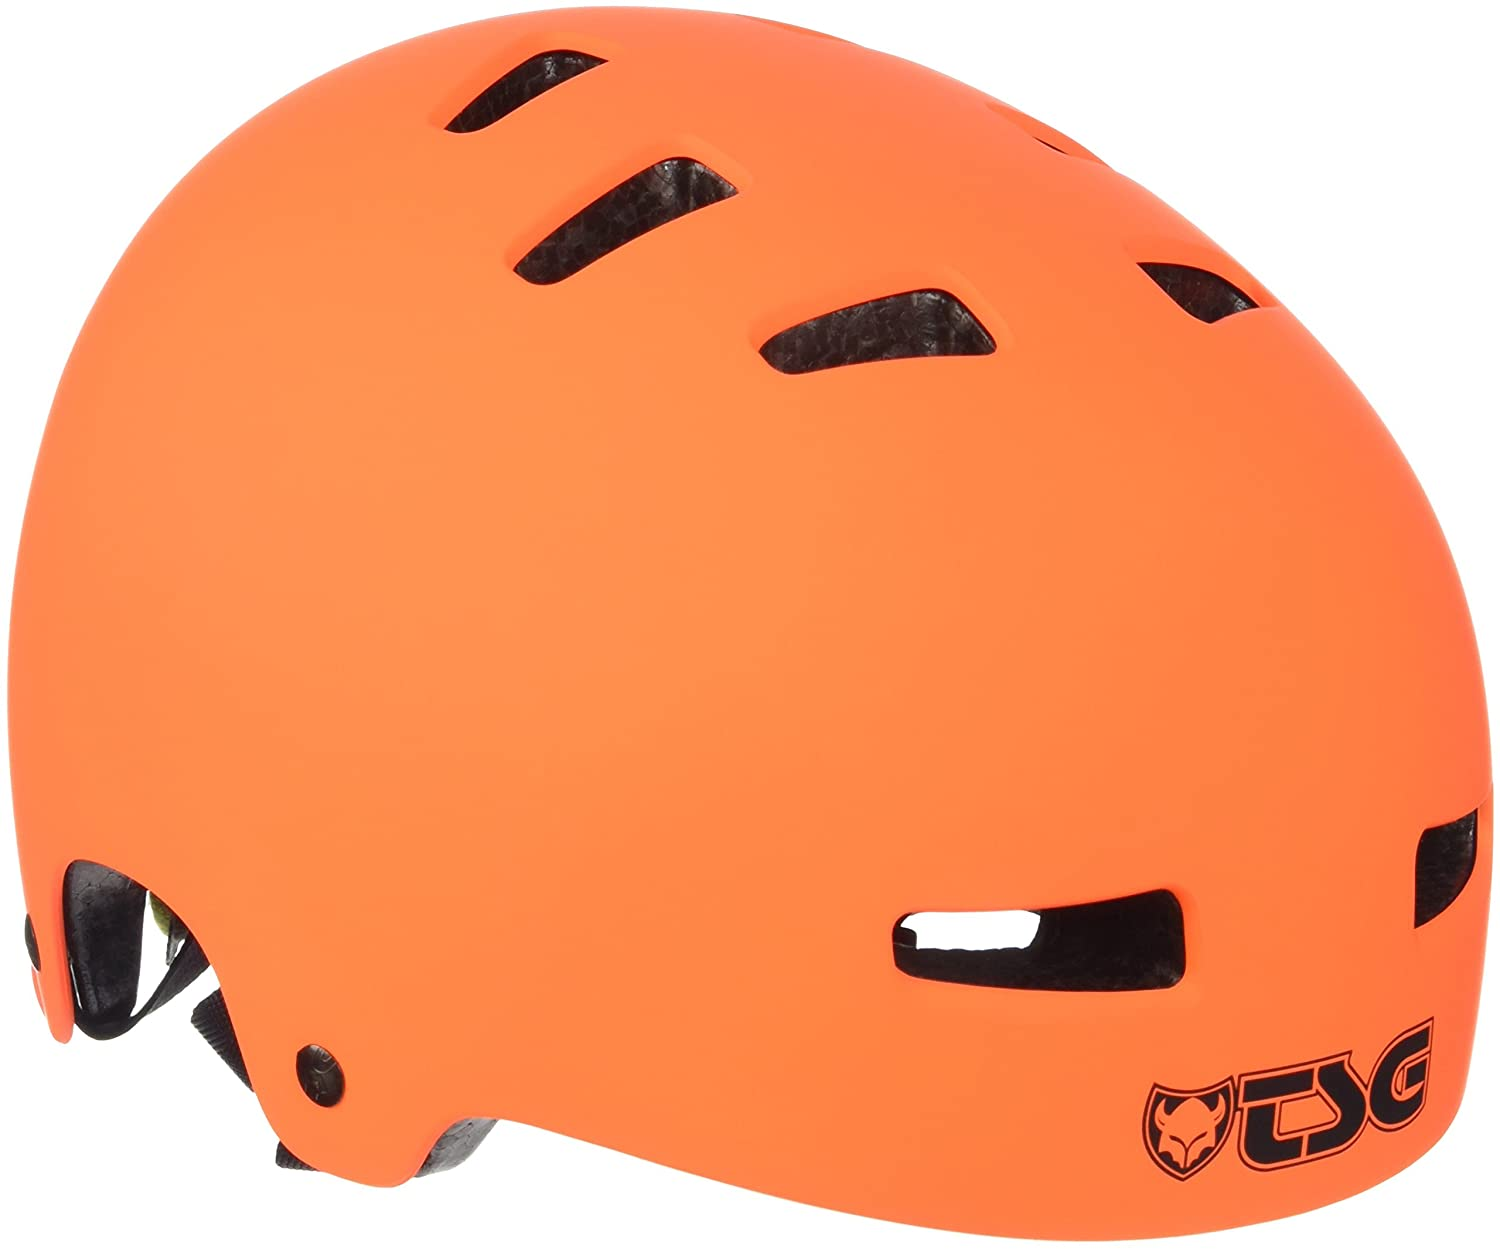 TSG Evolution Solid Color Casco de Skateboarding, Unisex Adulto, Naranja (Flat Orange), L/XL (57-59 cm) 75046